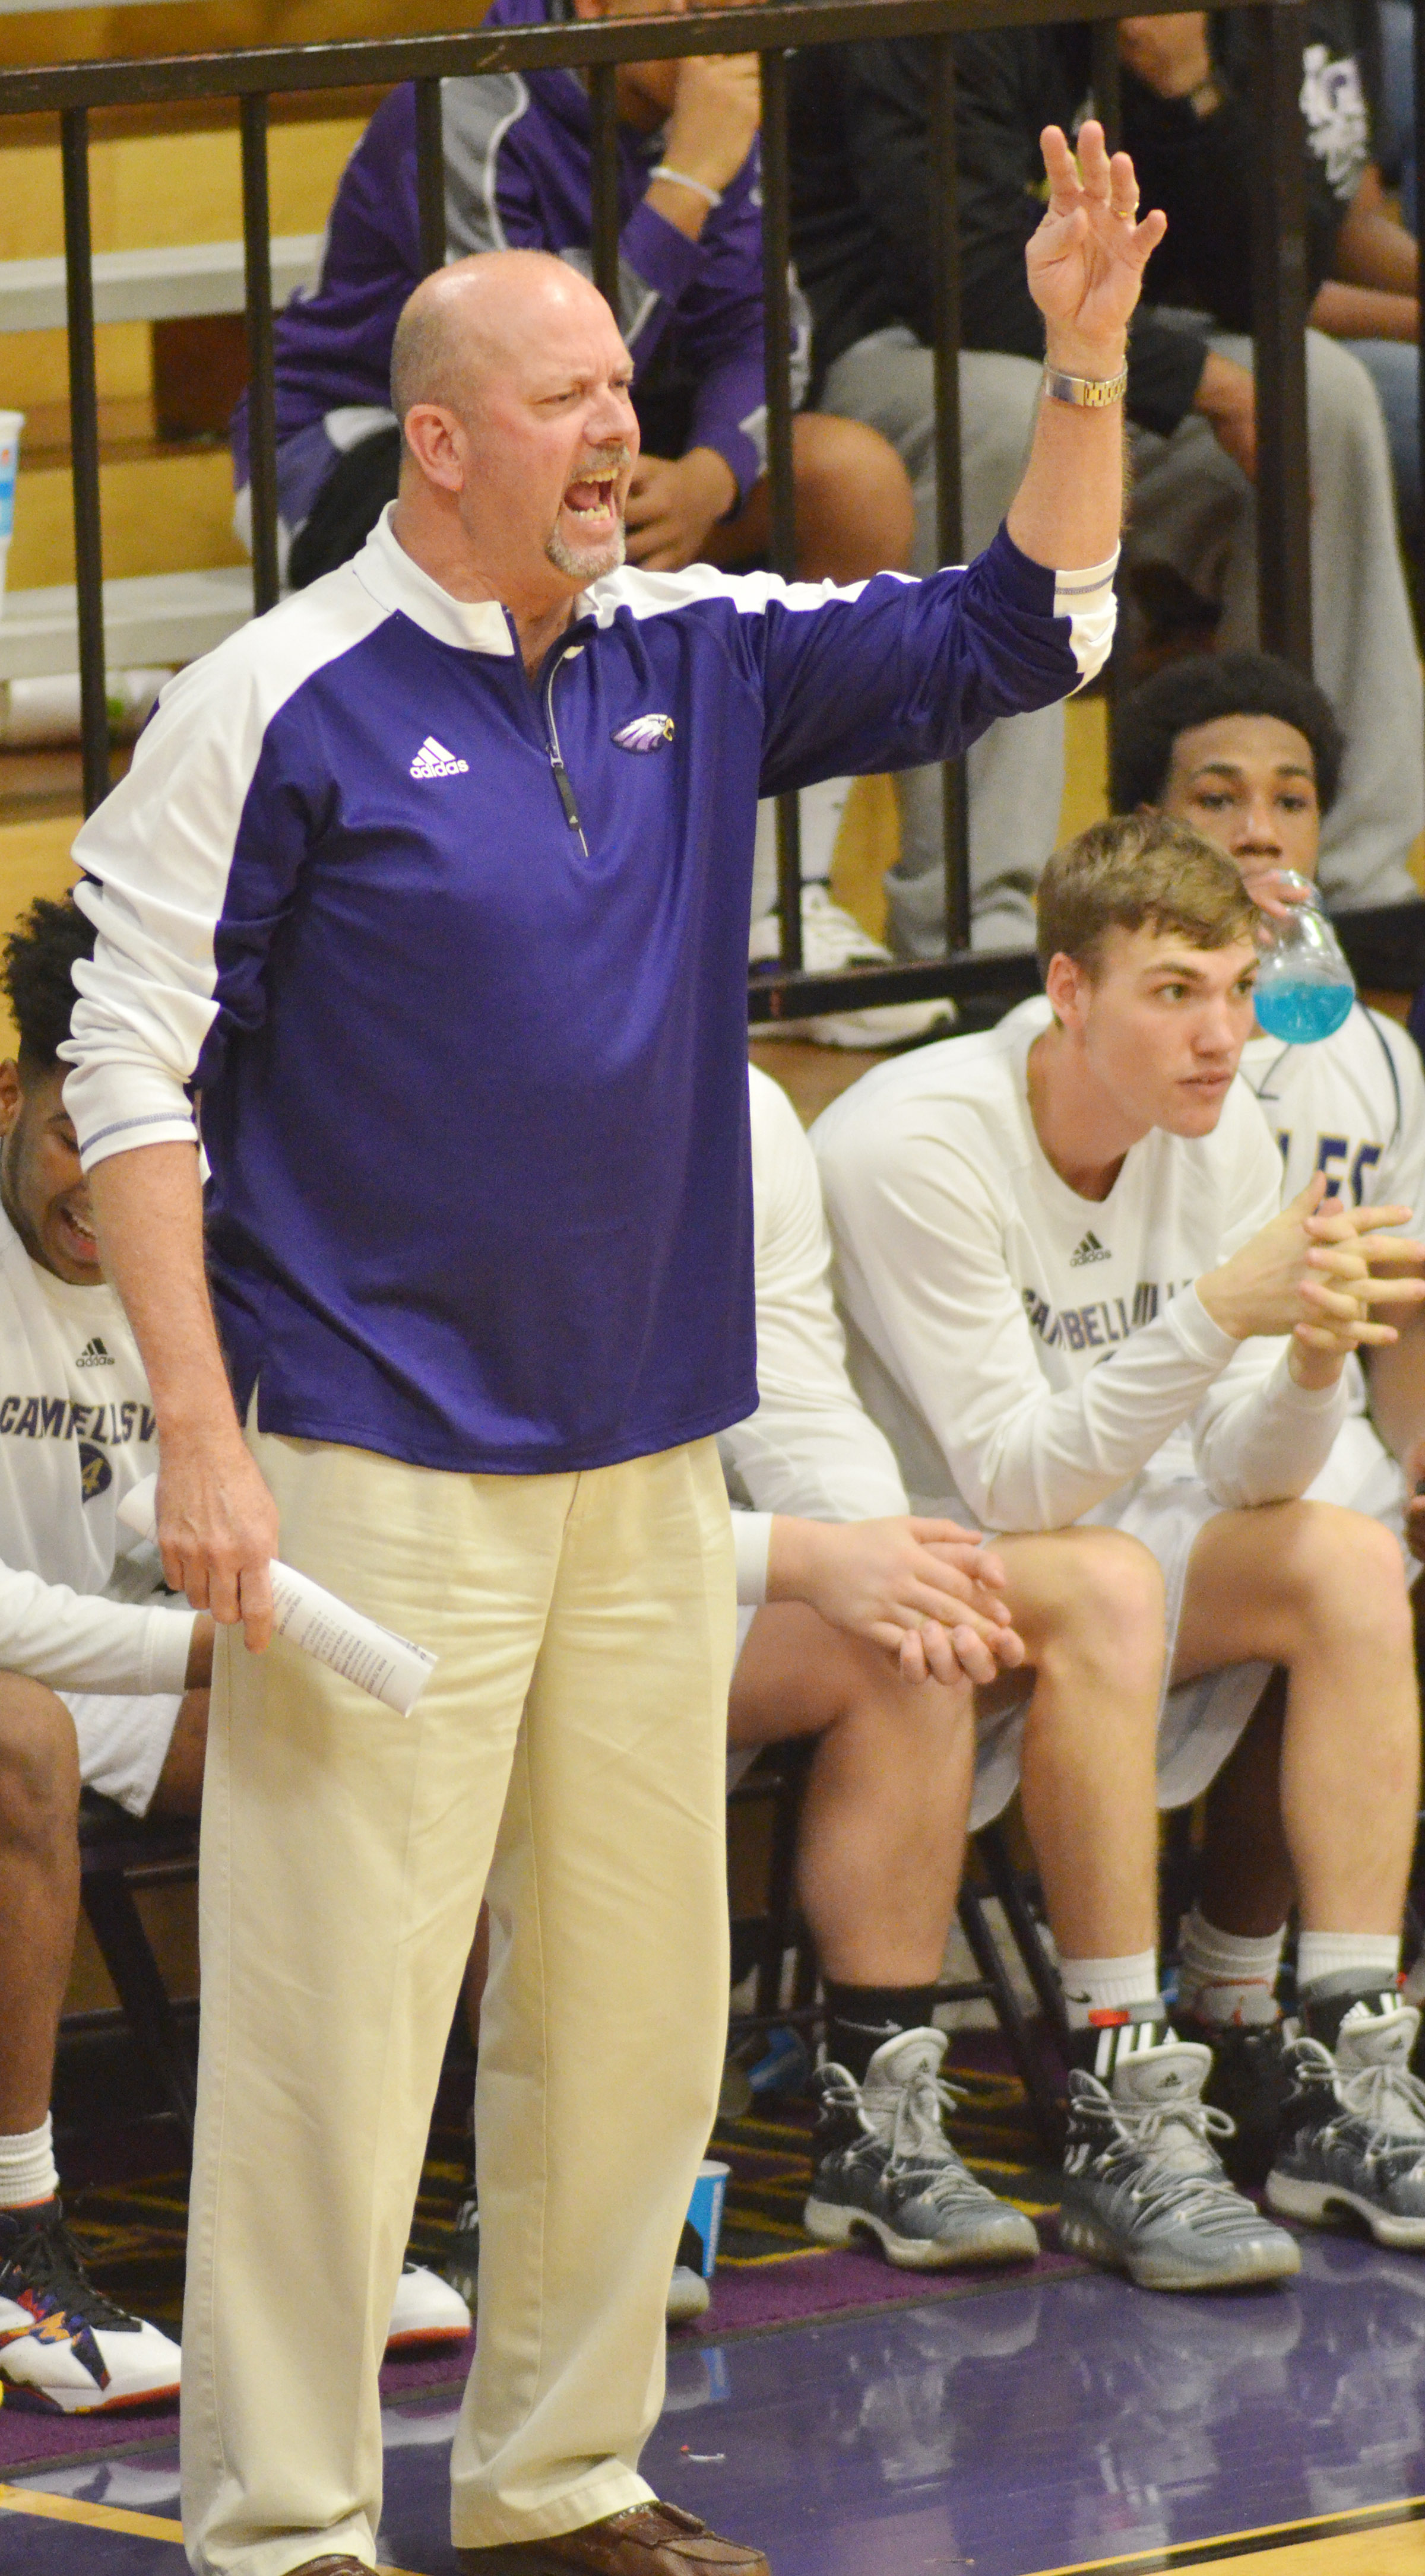 Campbellsville High School boys' head basketball coach and athletic director Tim Davis will soon be inducted into the National High School Athletic Coaches Association Hall of Fame for his longevity and service to high school athletics.